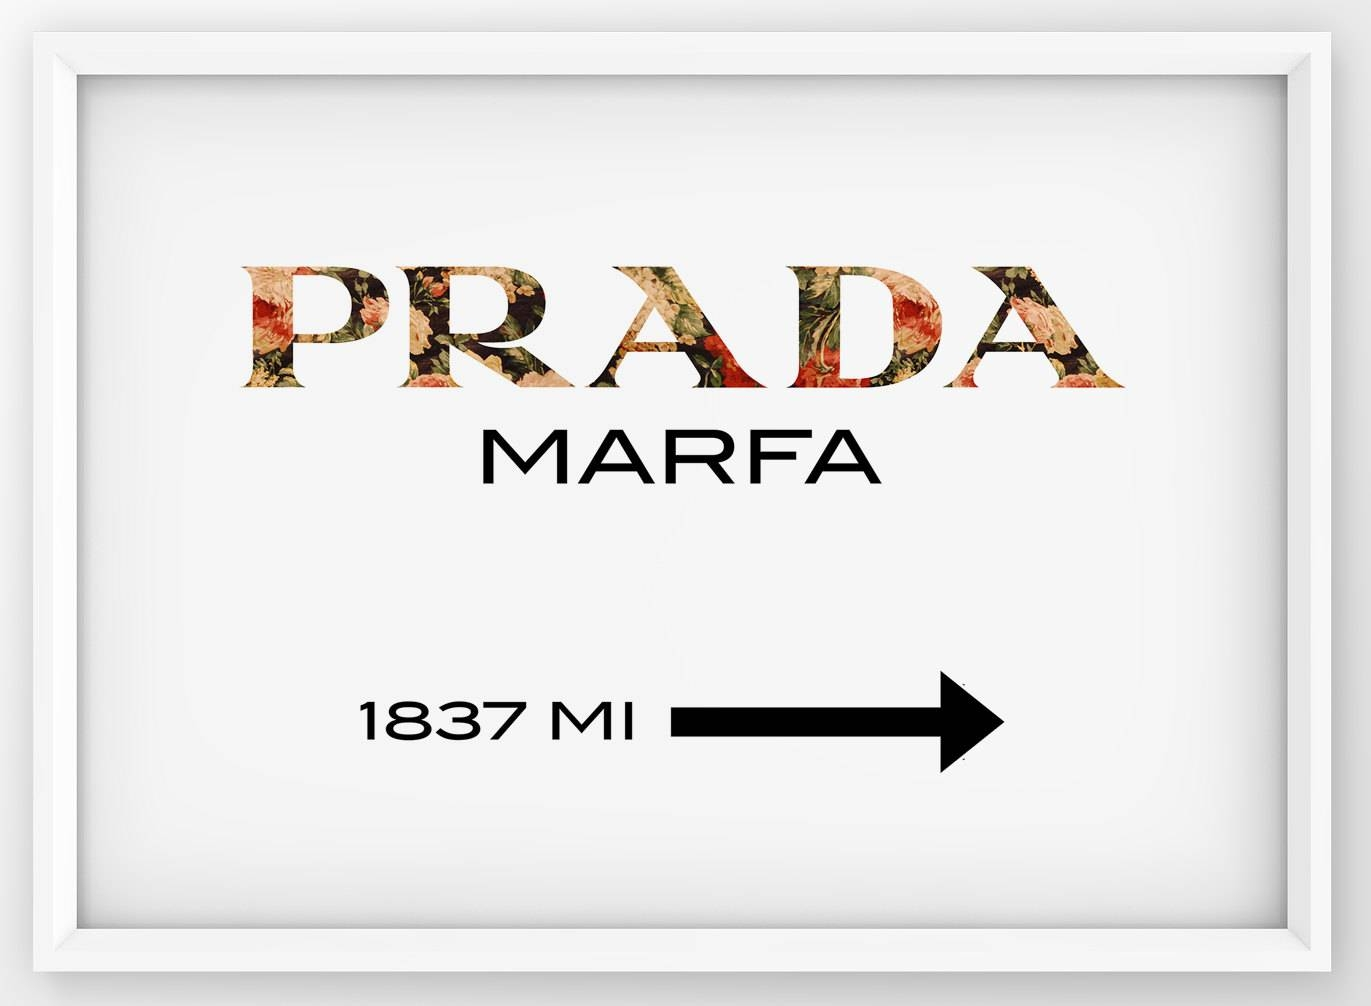 Floral Prada Marfa Sign Prada Marfa Print Prada Logo Poster Pertaining To Latest Prada Marfa Wall Art (View 4 of 25)